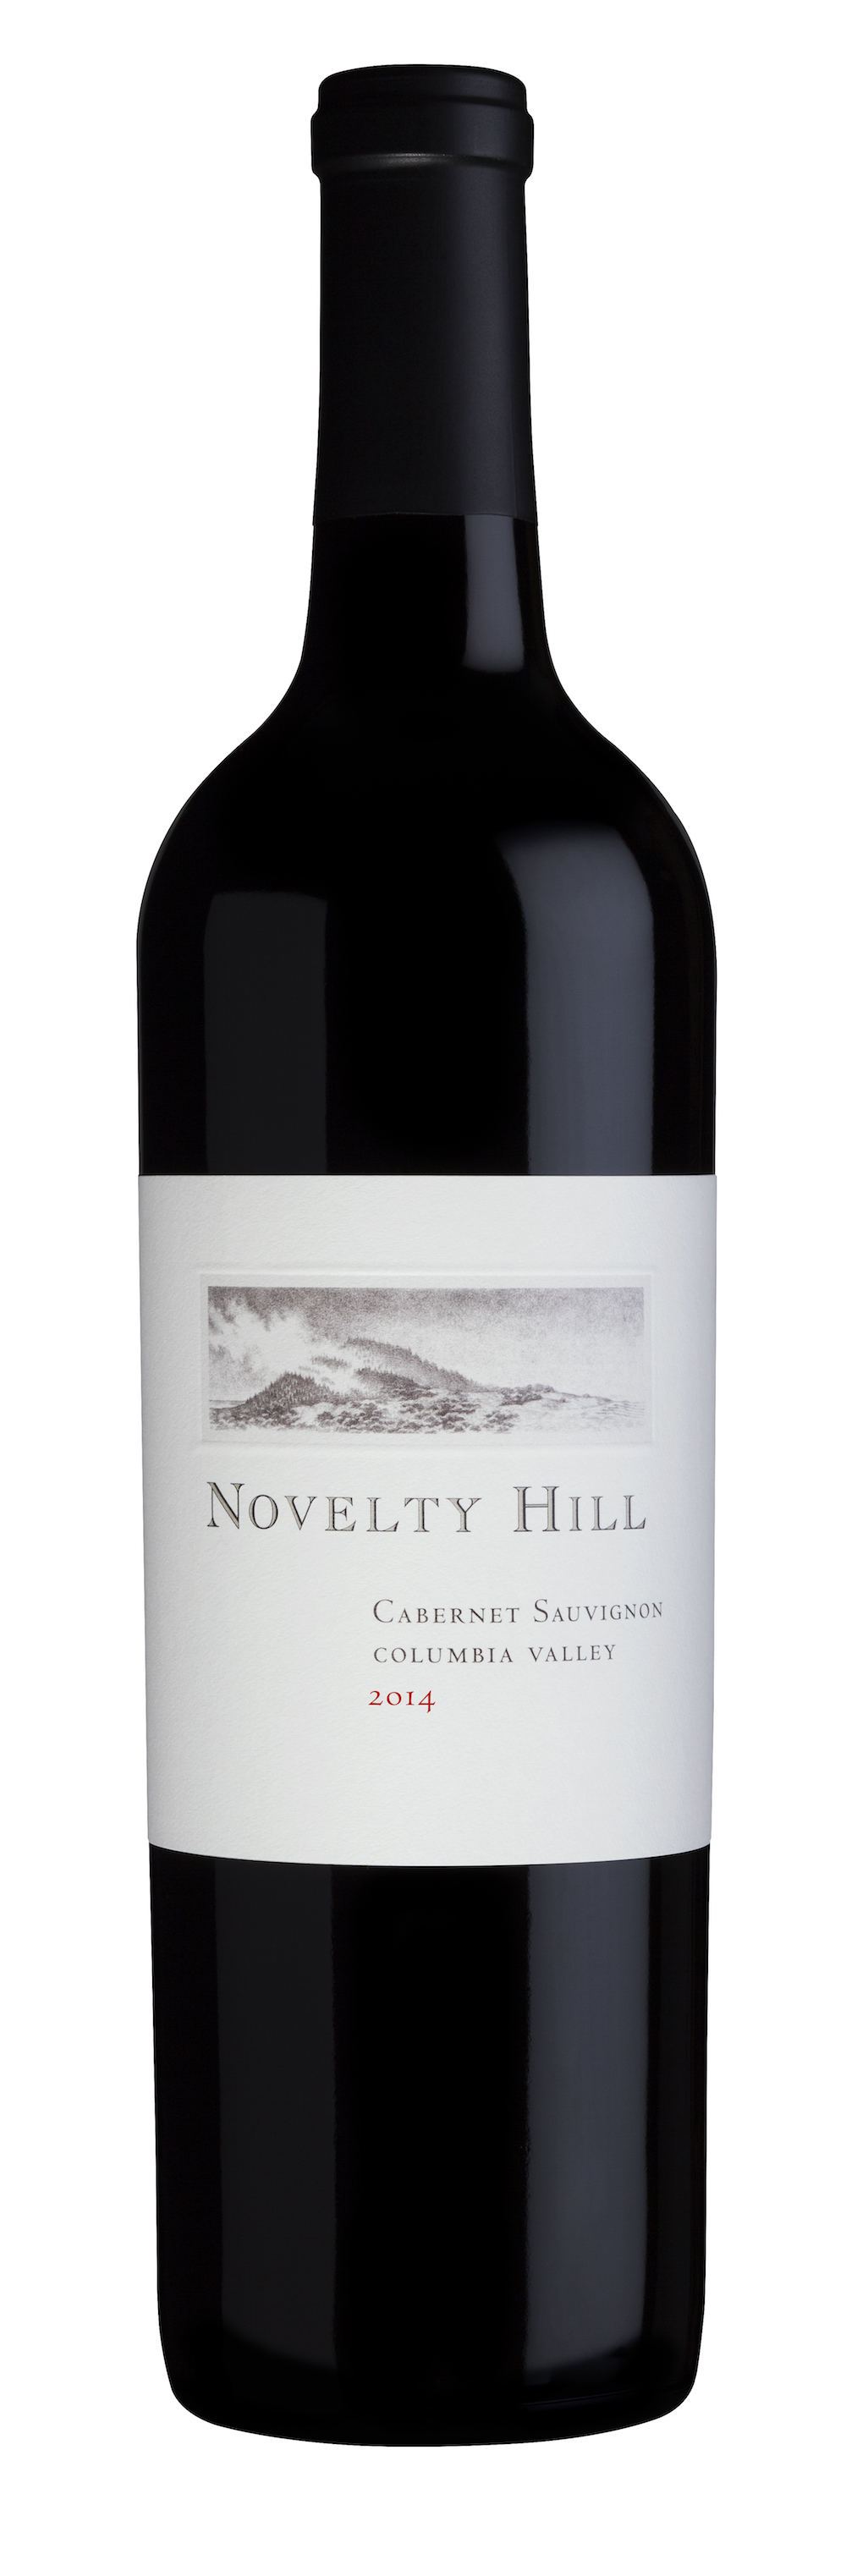 Novelty Hill 2015 Columbia Valley Cabernet Sauvignon